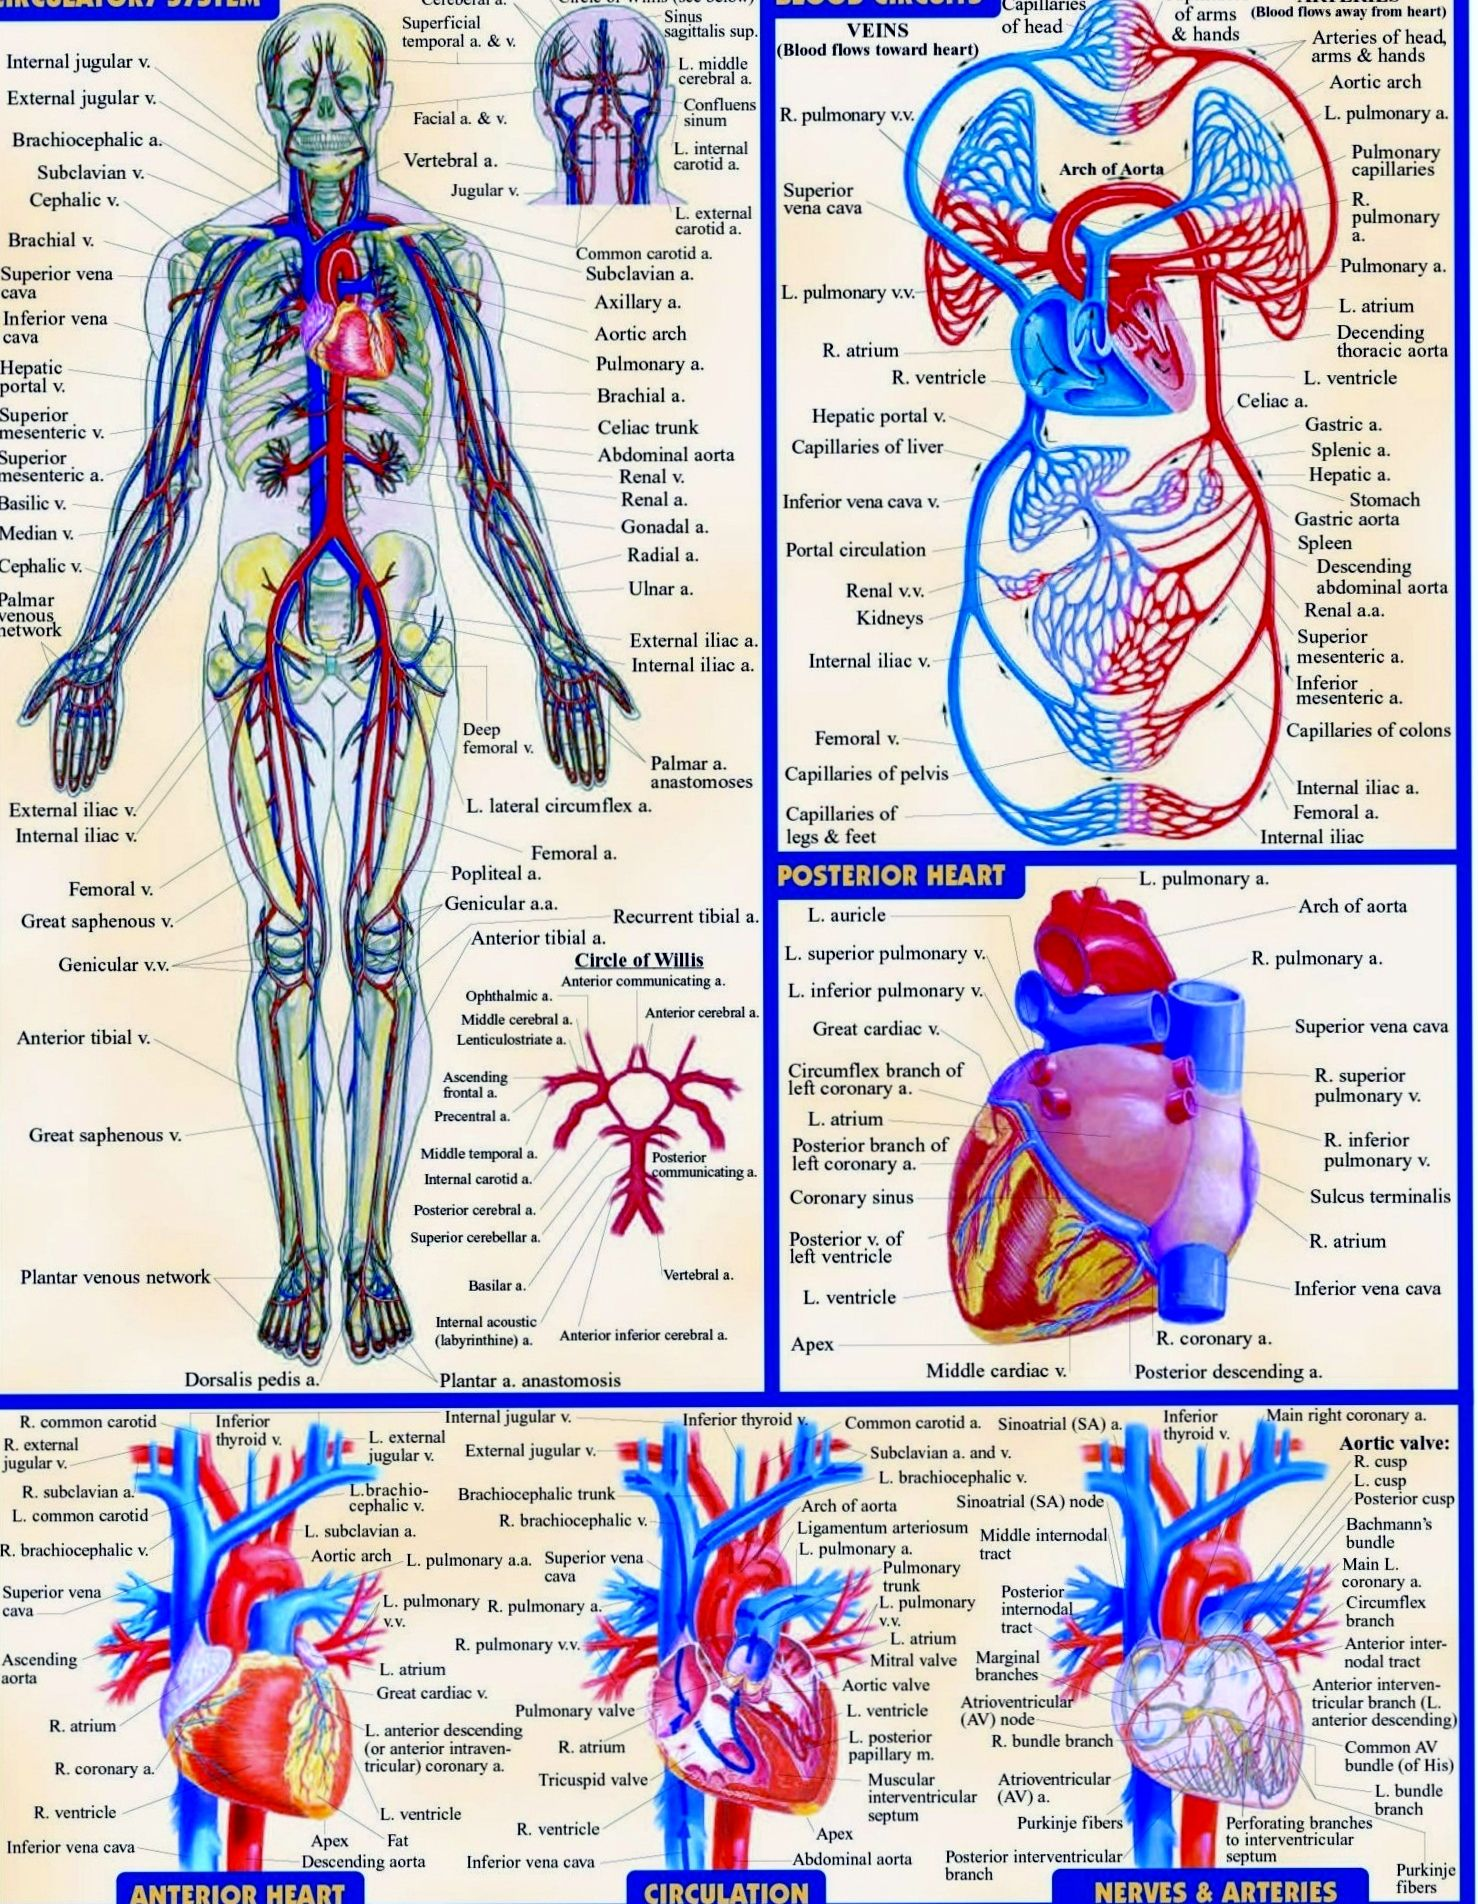 the cardiovascular system The circulatory system, also called the cardiovascular system or the vascular system, is an organ system that permits blood to circulate and transport nutrients.